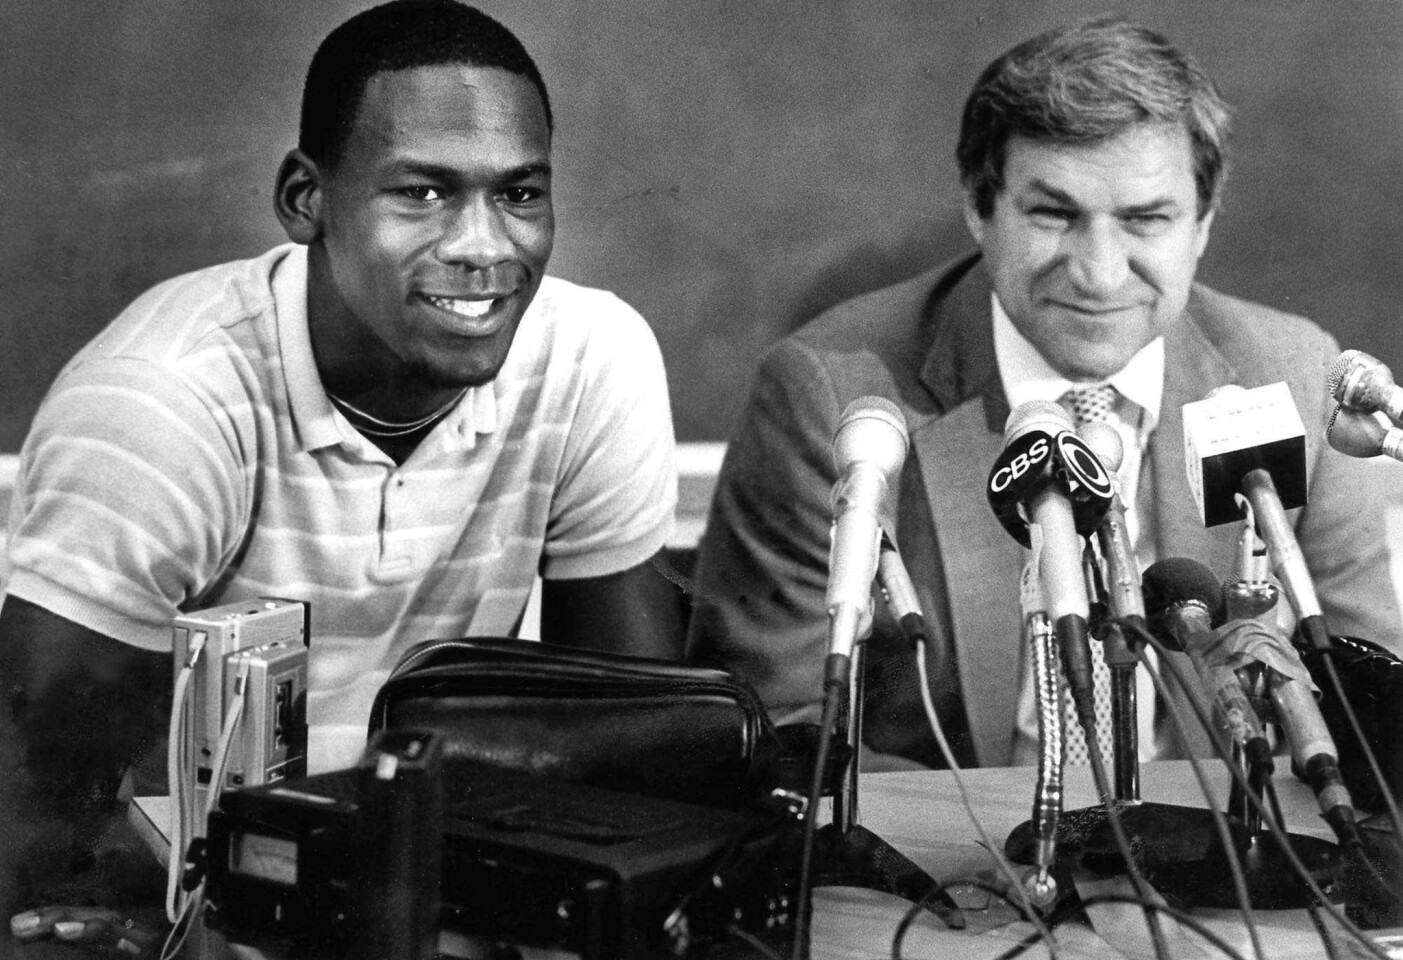 North Carolina guard Michael Jordan, left, and Tar Heels coach Dean Smith are shown at a news conference in Chapel Hill, N.C., where Jordan announced he would forfeit his final year of college eligibility to turn pro in 1984.